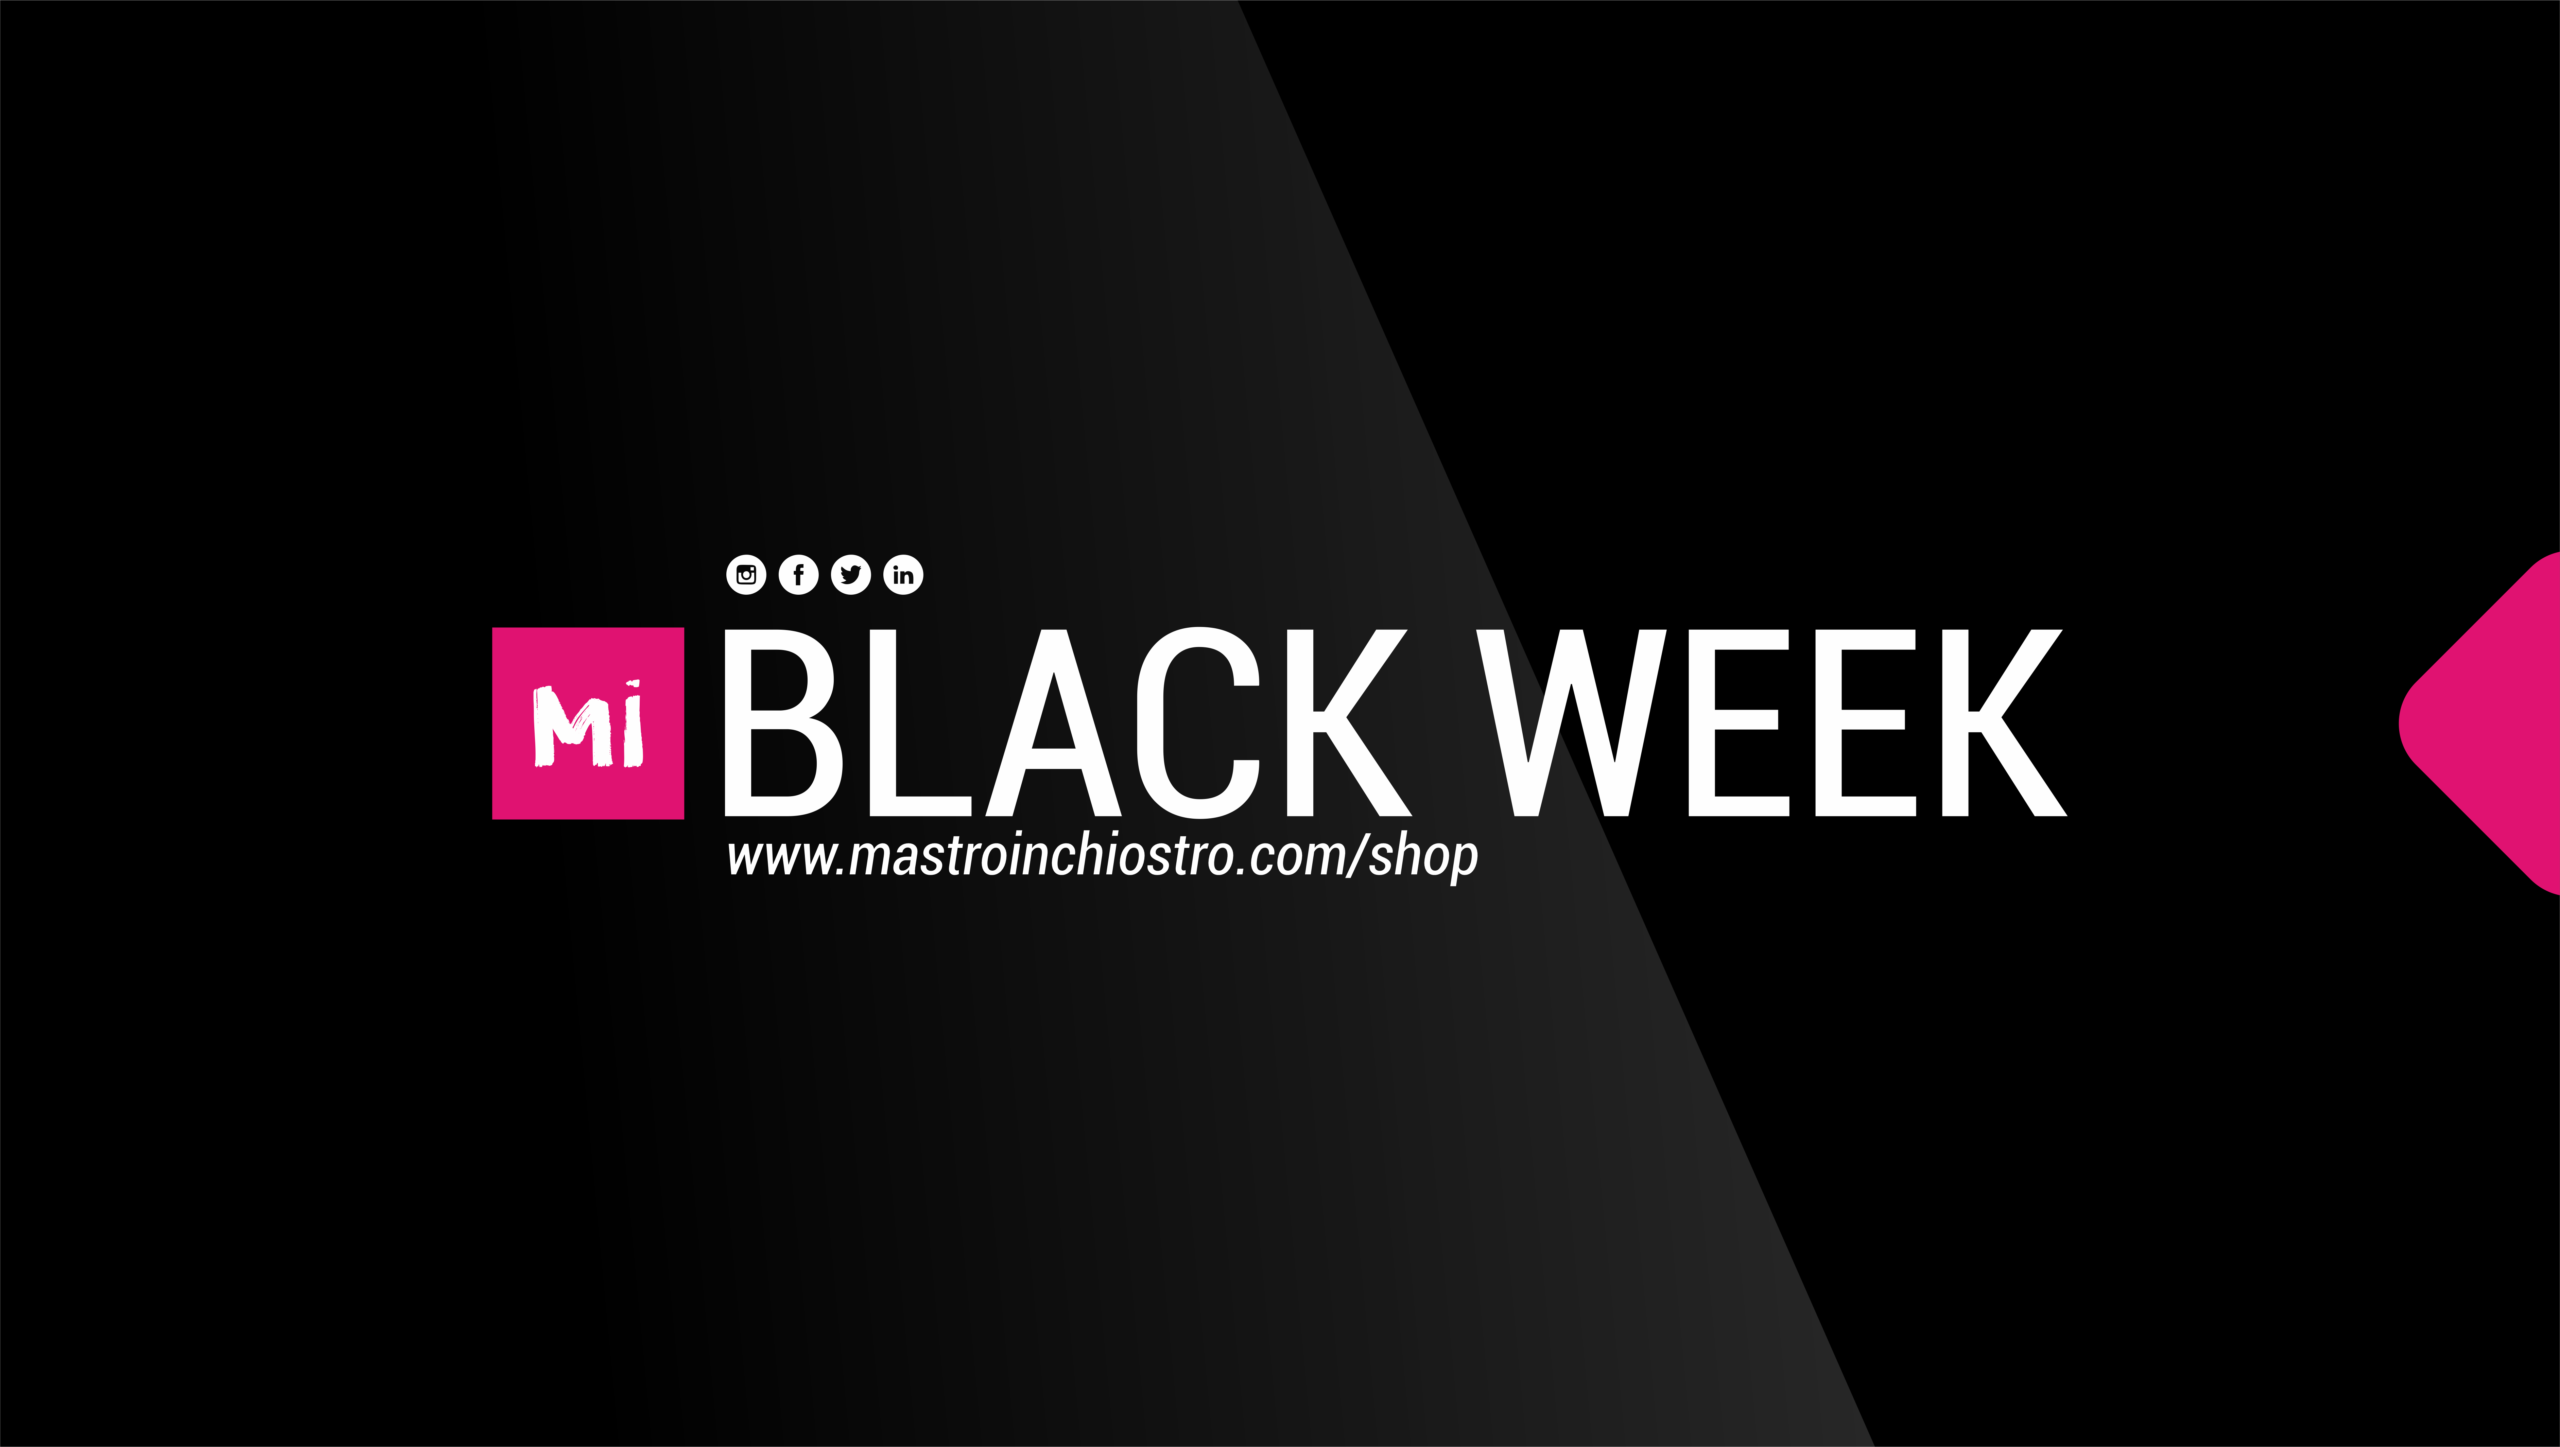 black week and black friday | business cards black paper - stampa hotfoil | MASTROiNCHIOSTRO